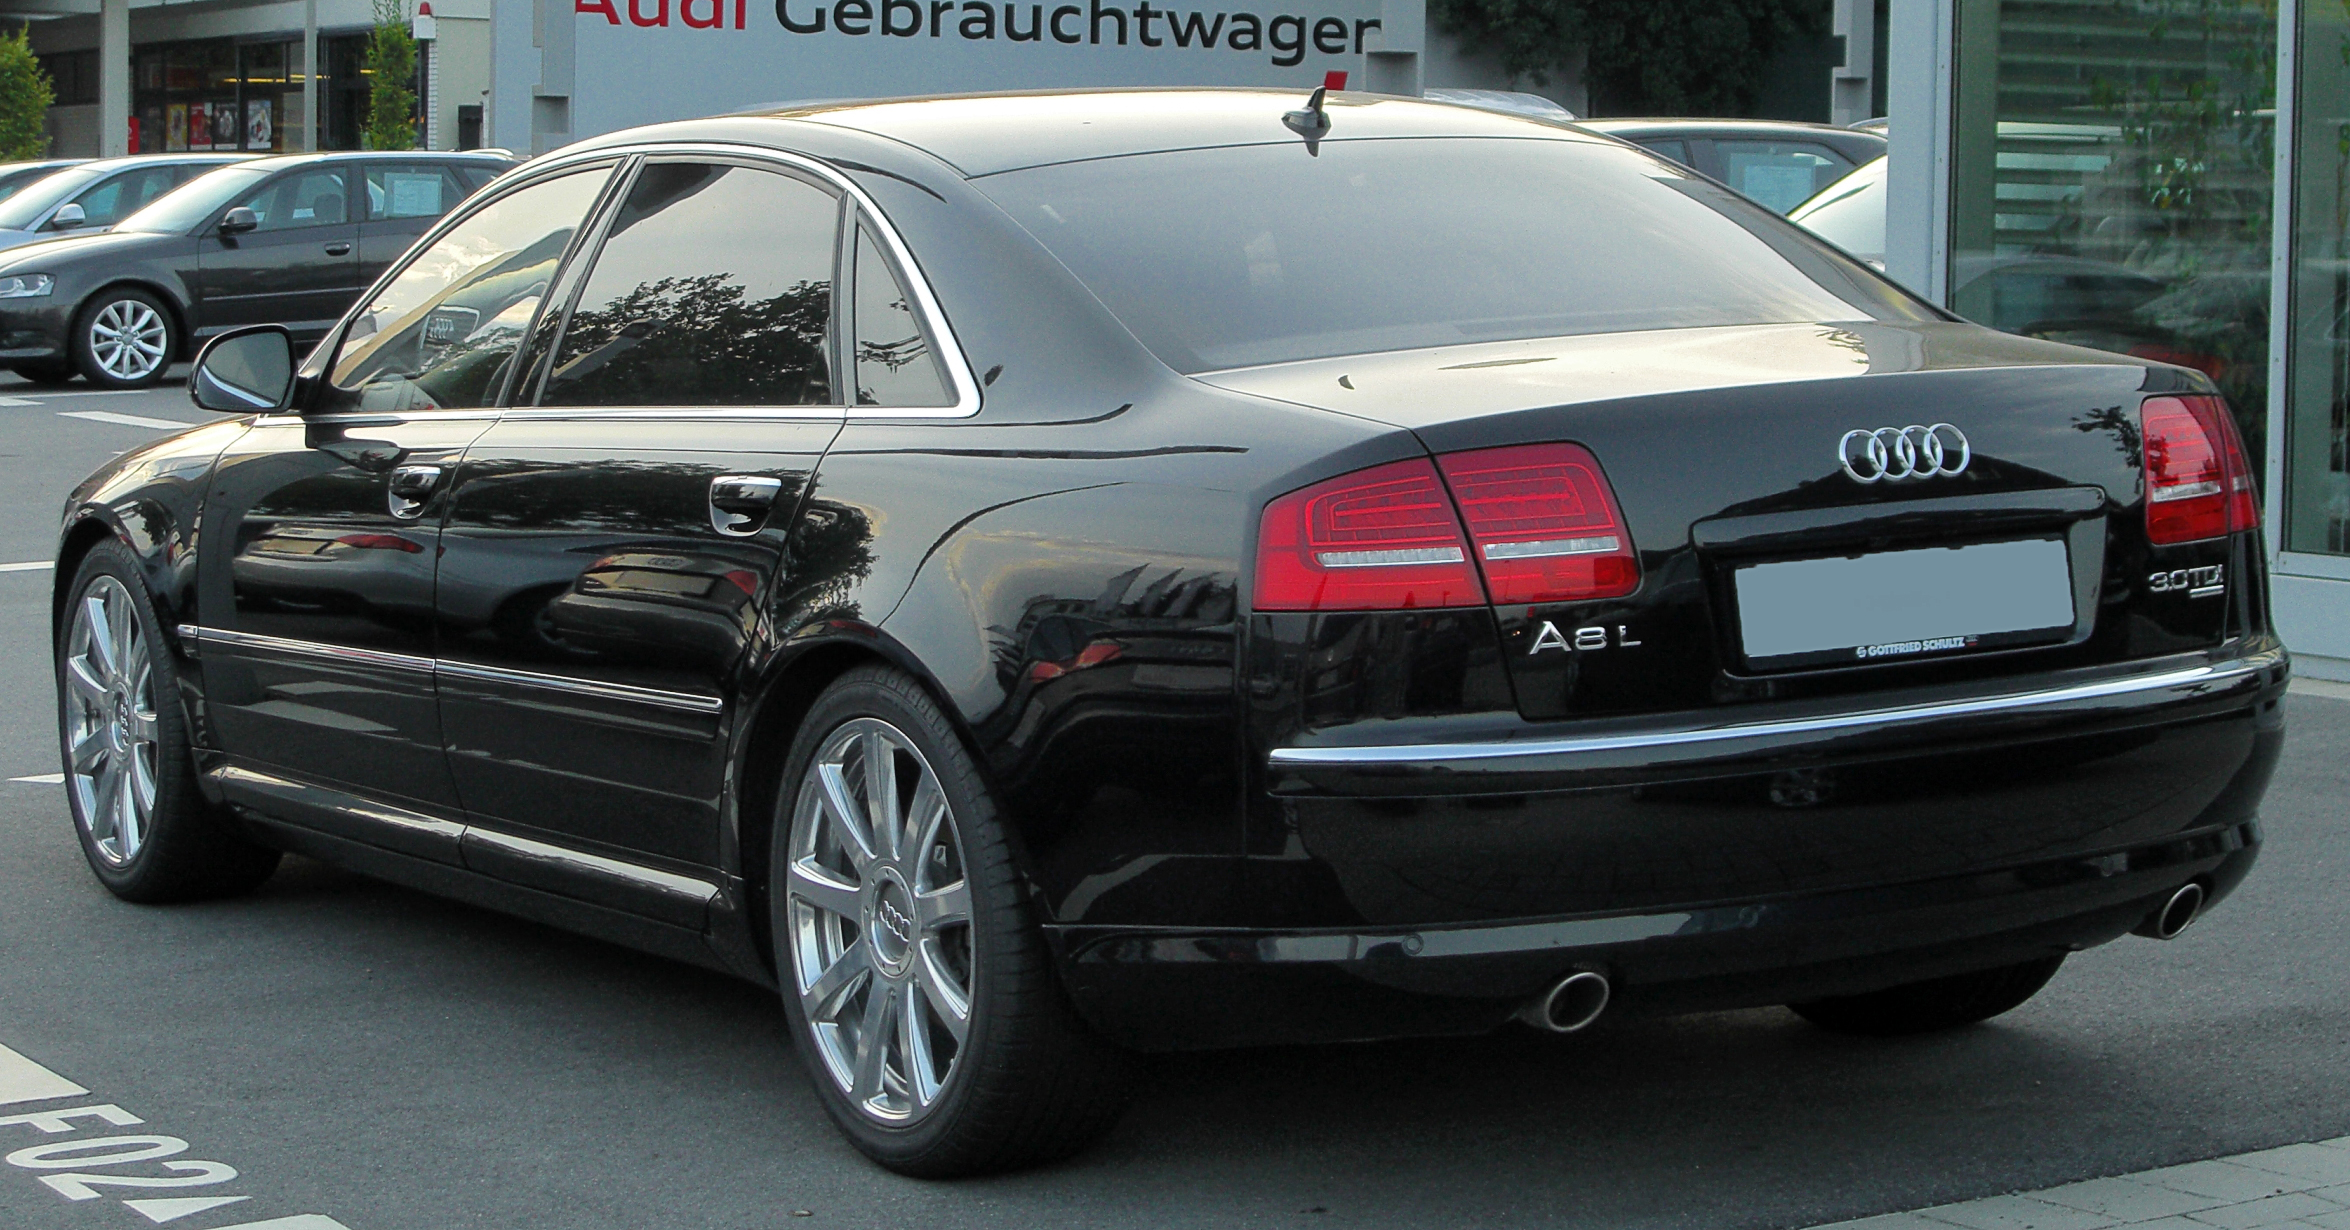 audi a8 3 0 tdi quattro technical details history photos on better parts ltd. Black Bedroom Furniture Sets. Home Design Ideas